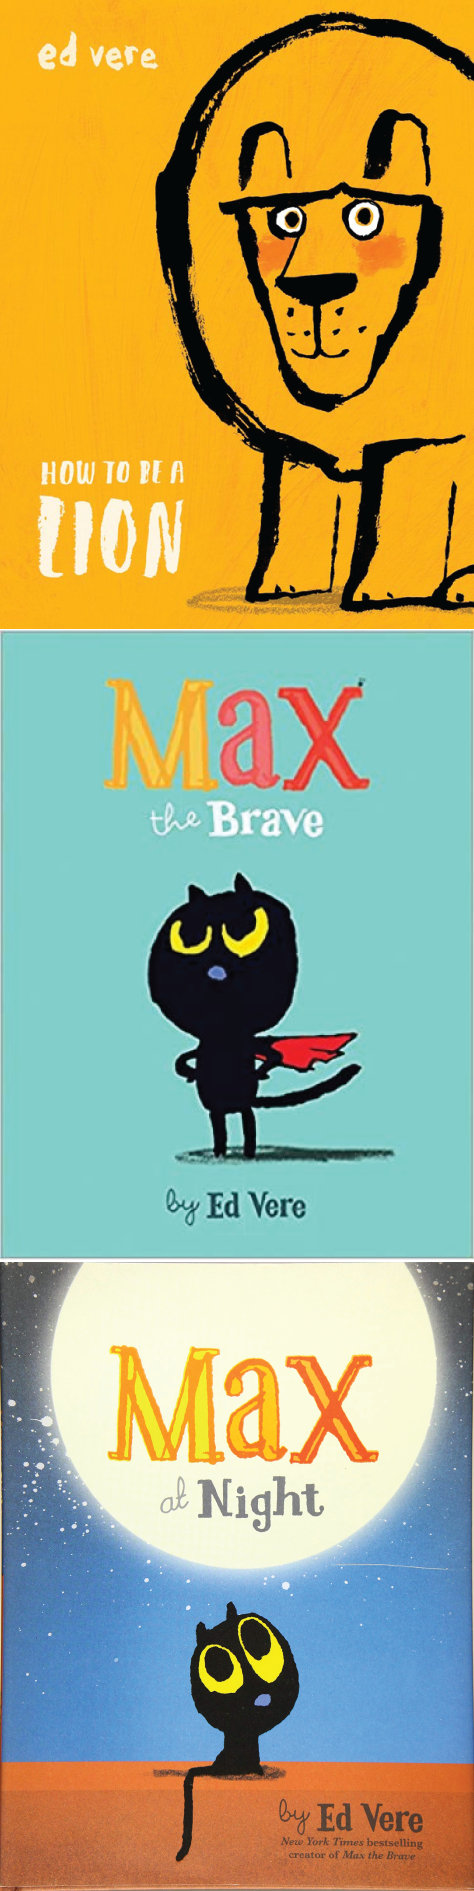 Covers of 3 books by Ed Vere: How to be a Lion, Max the Brave, Max at Night